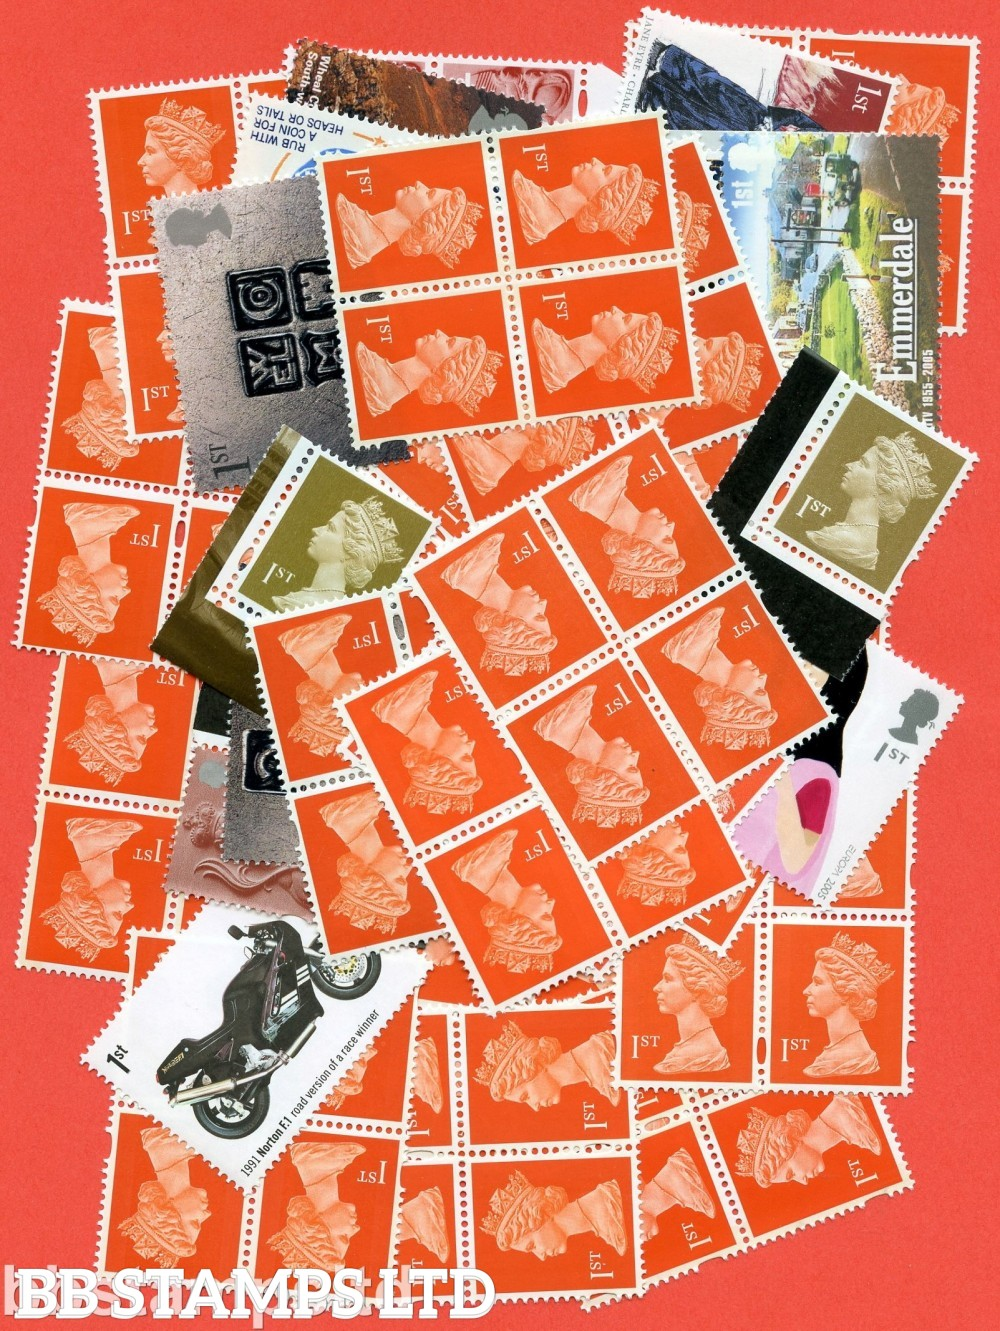 2000 1st Class (70p) stamps. £1400.00 of face value Postage at 72.07.%. All of our postage lots are genuine mint stamps with gum and have never been used as postage.